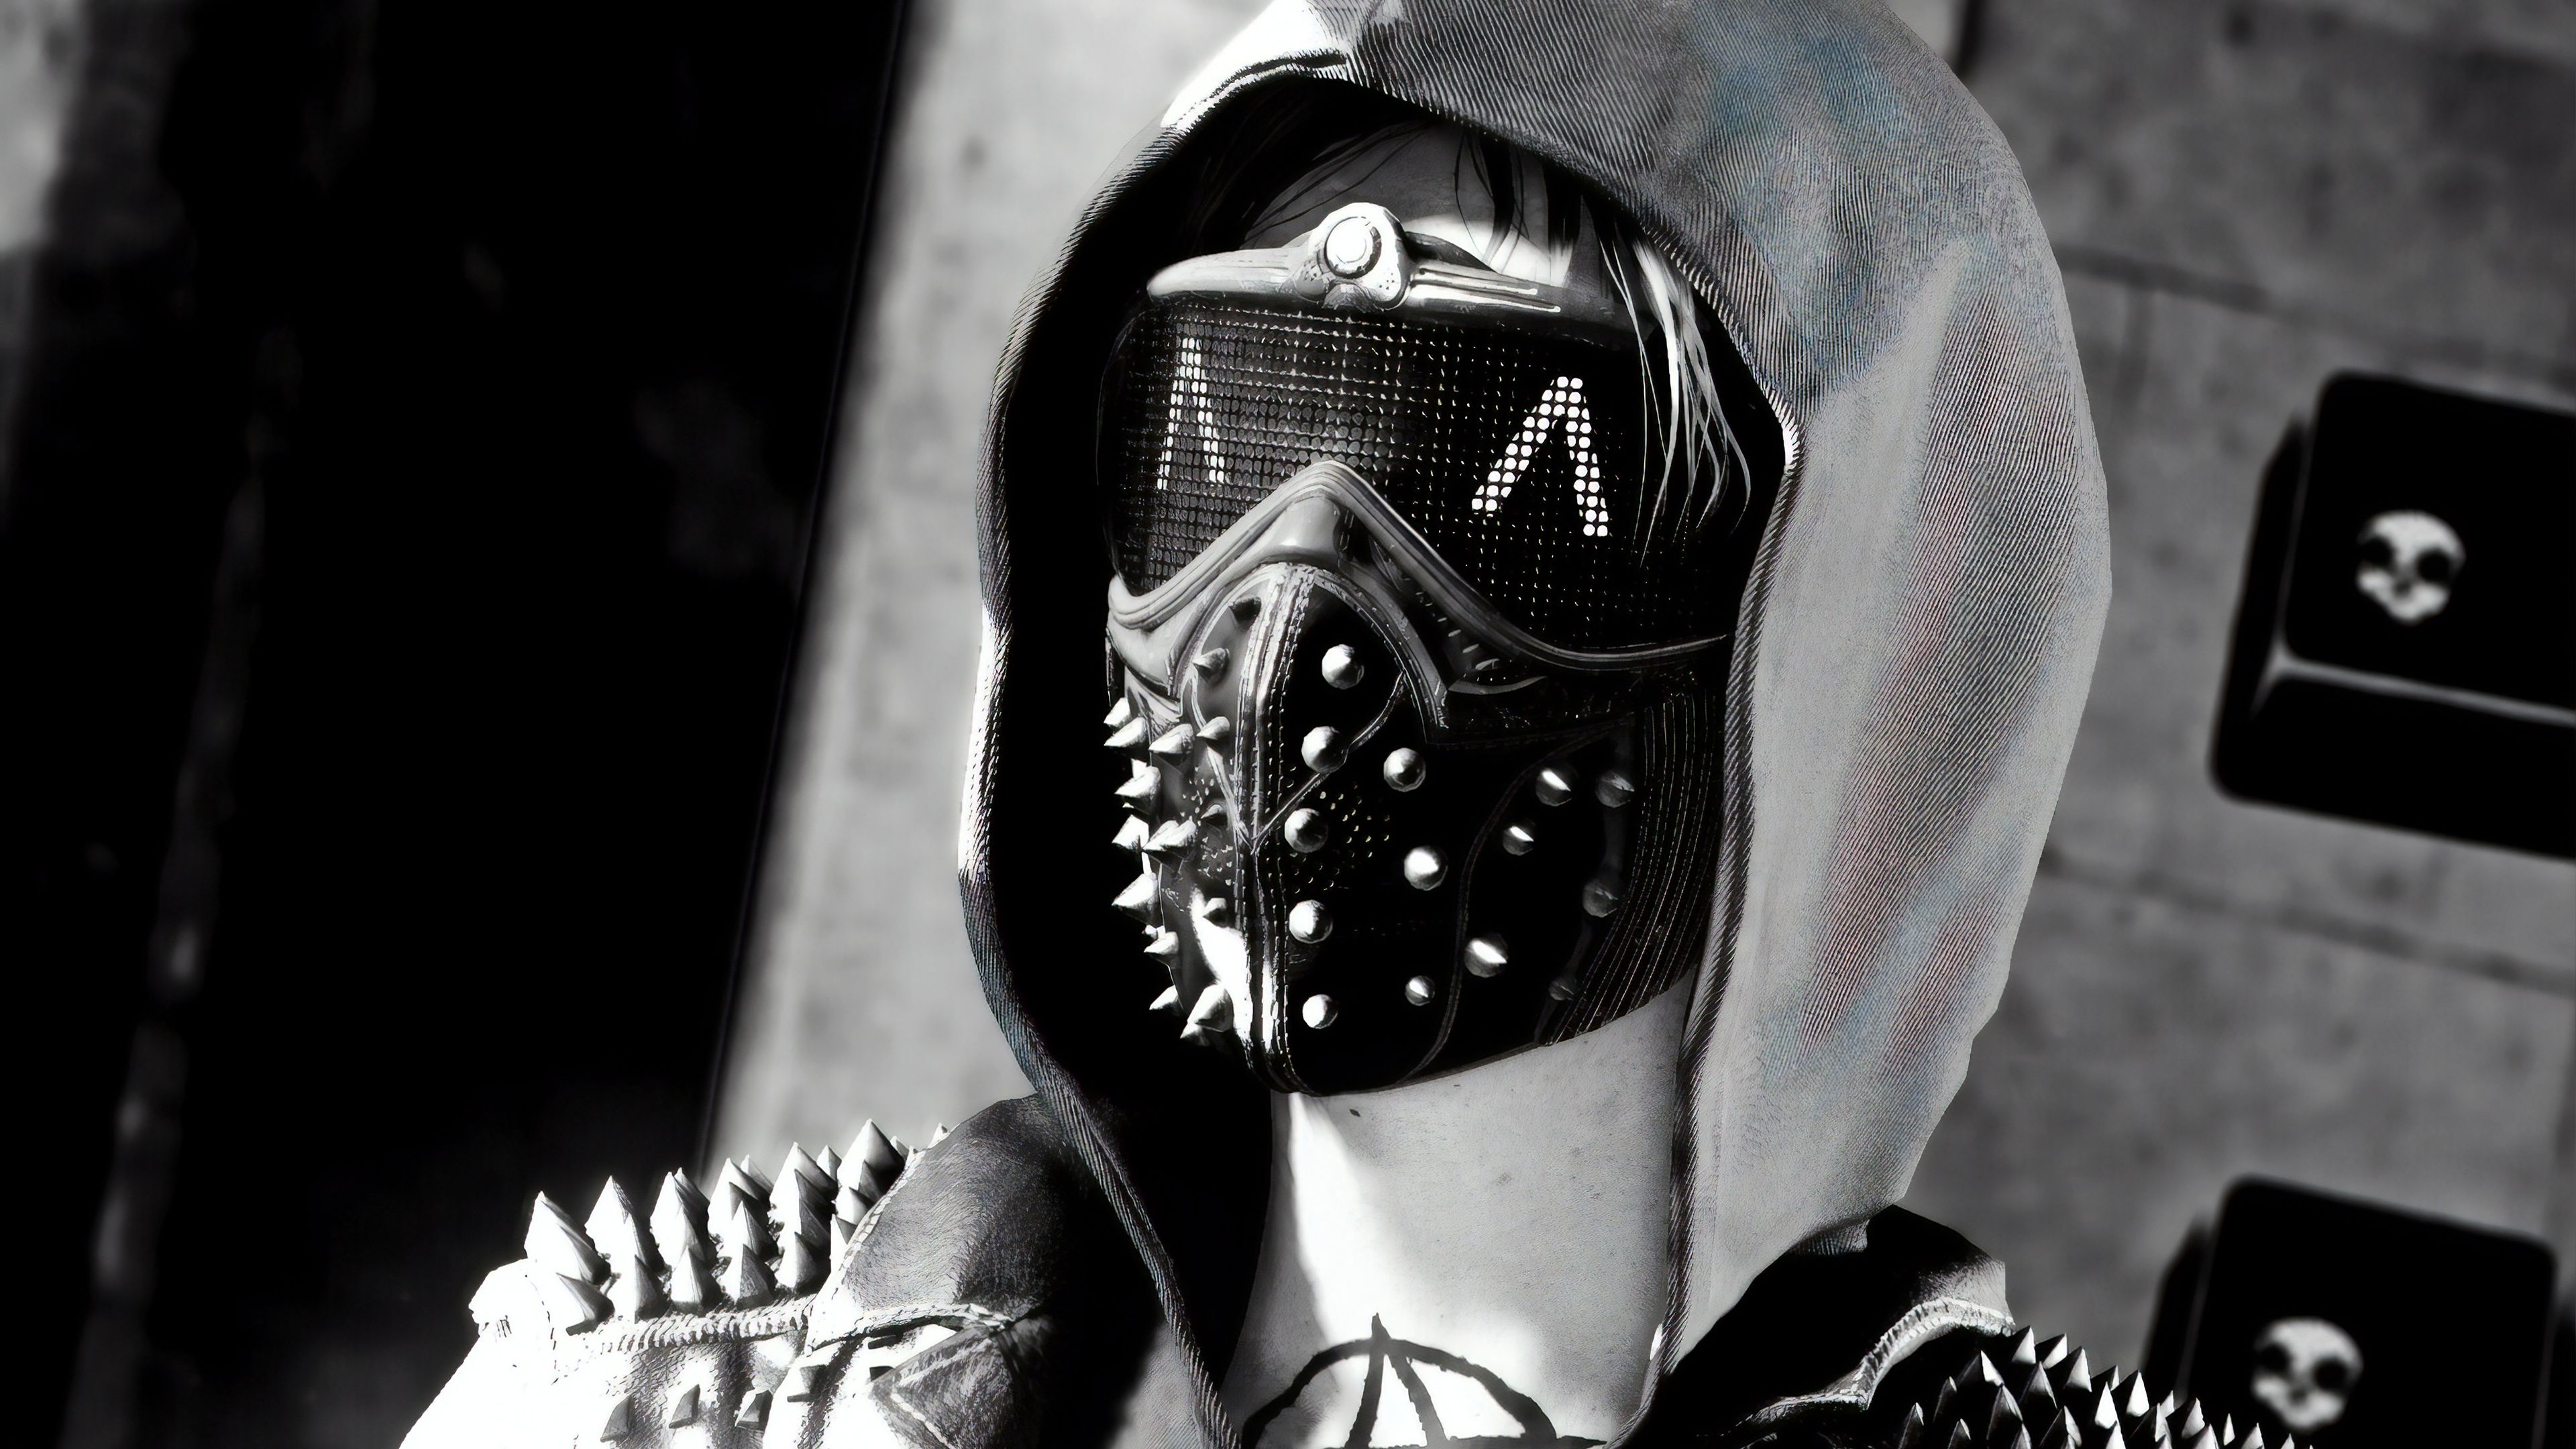 Wrench Watch Dogs 2 Monochorme Wrench Watch Dogs 2 Wallpapers Watch Dogs 2 Wallpapers Monochrome Wal Wrench Watch Dogs 2 Watch Dogs Black And White Wallpaper